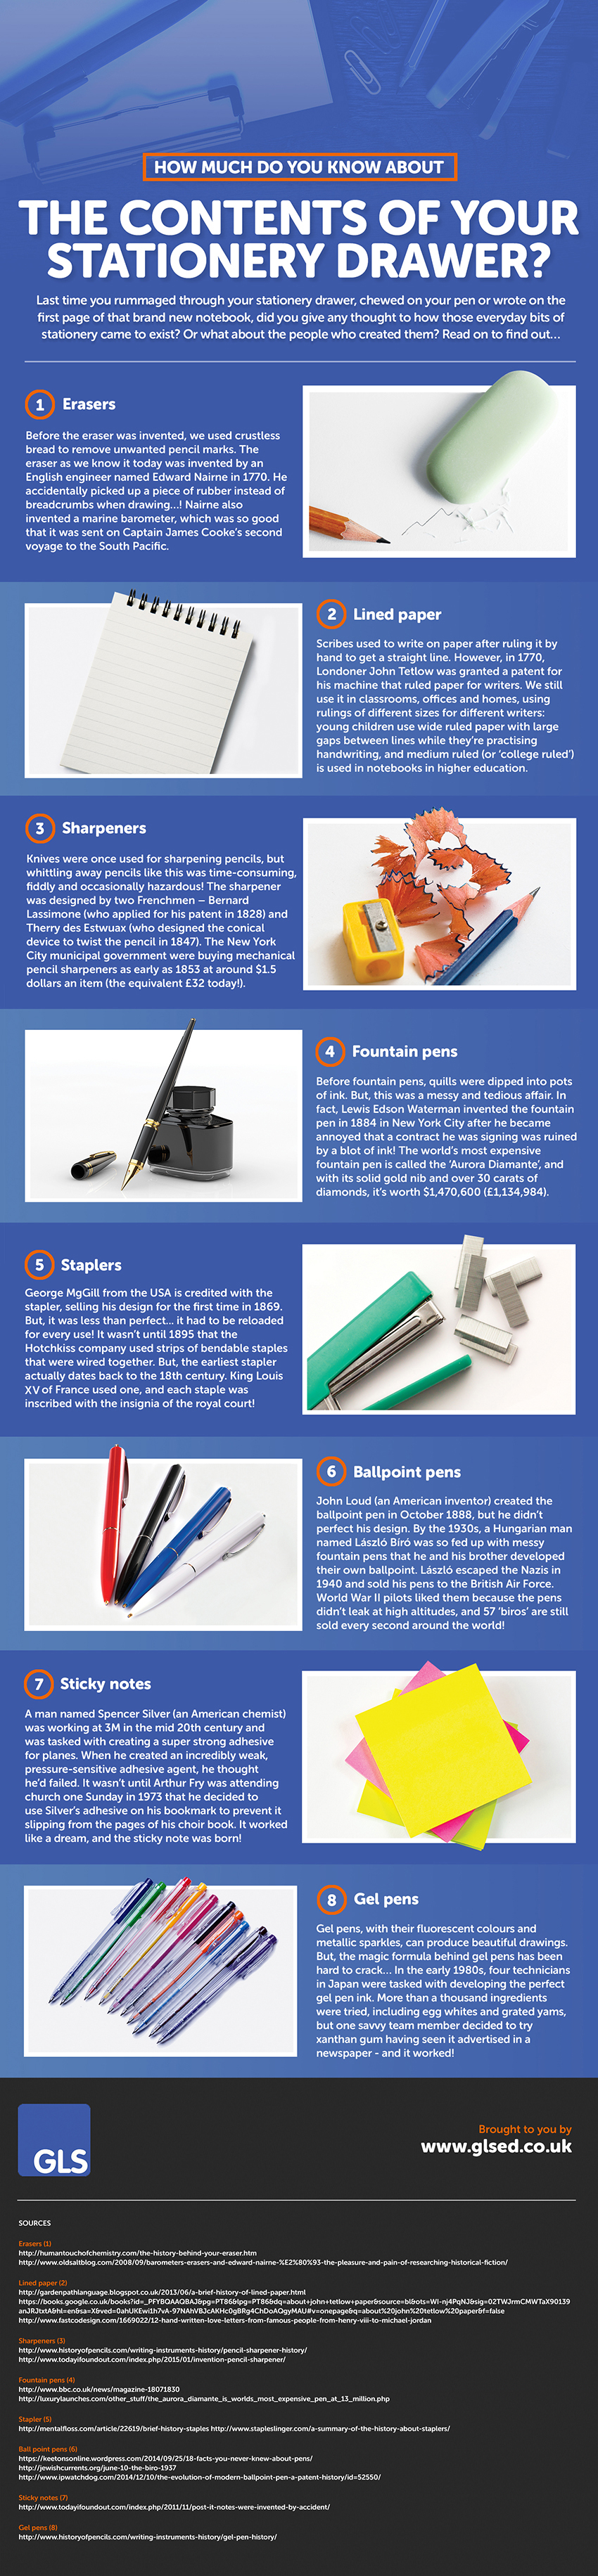 How Much Do You Know About the Contents Of Your Stationery Drawer?